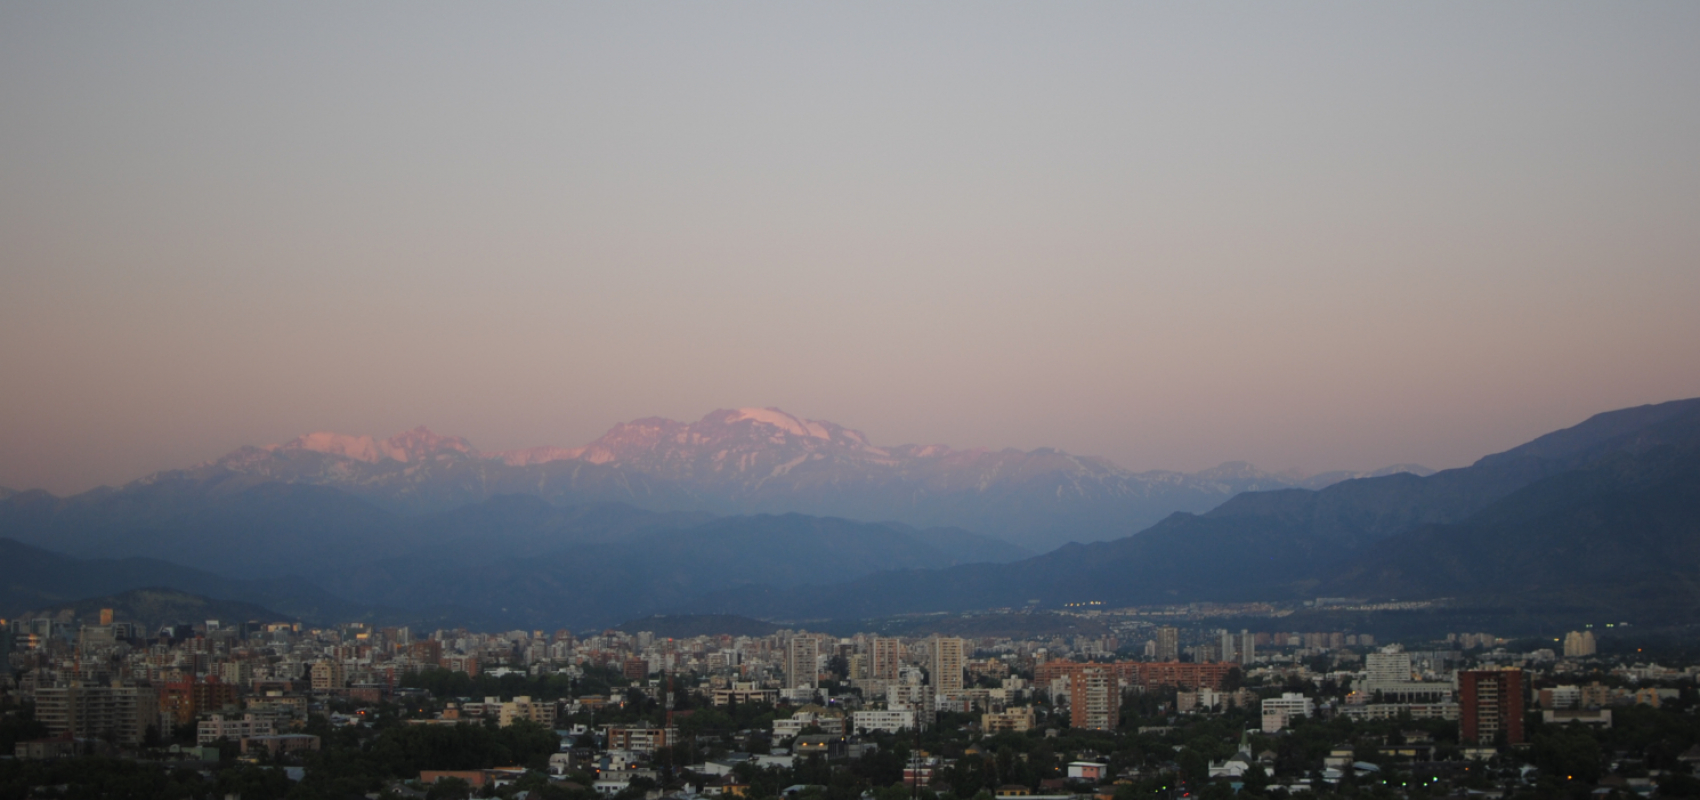 Santiago Chile panoramic